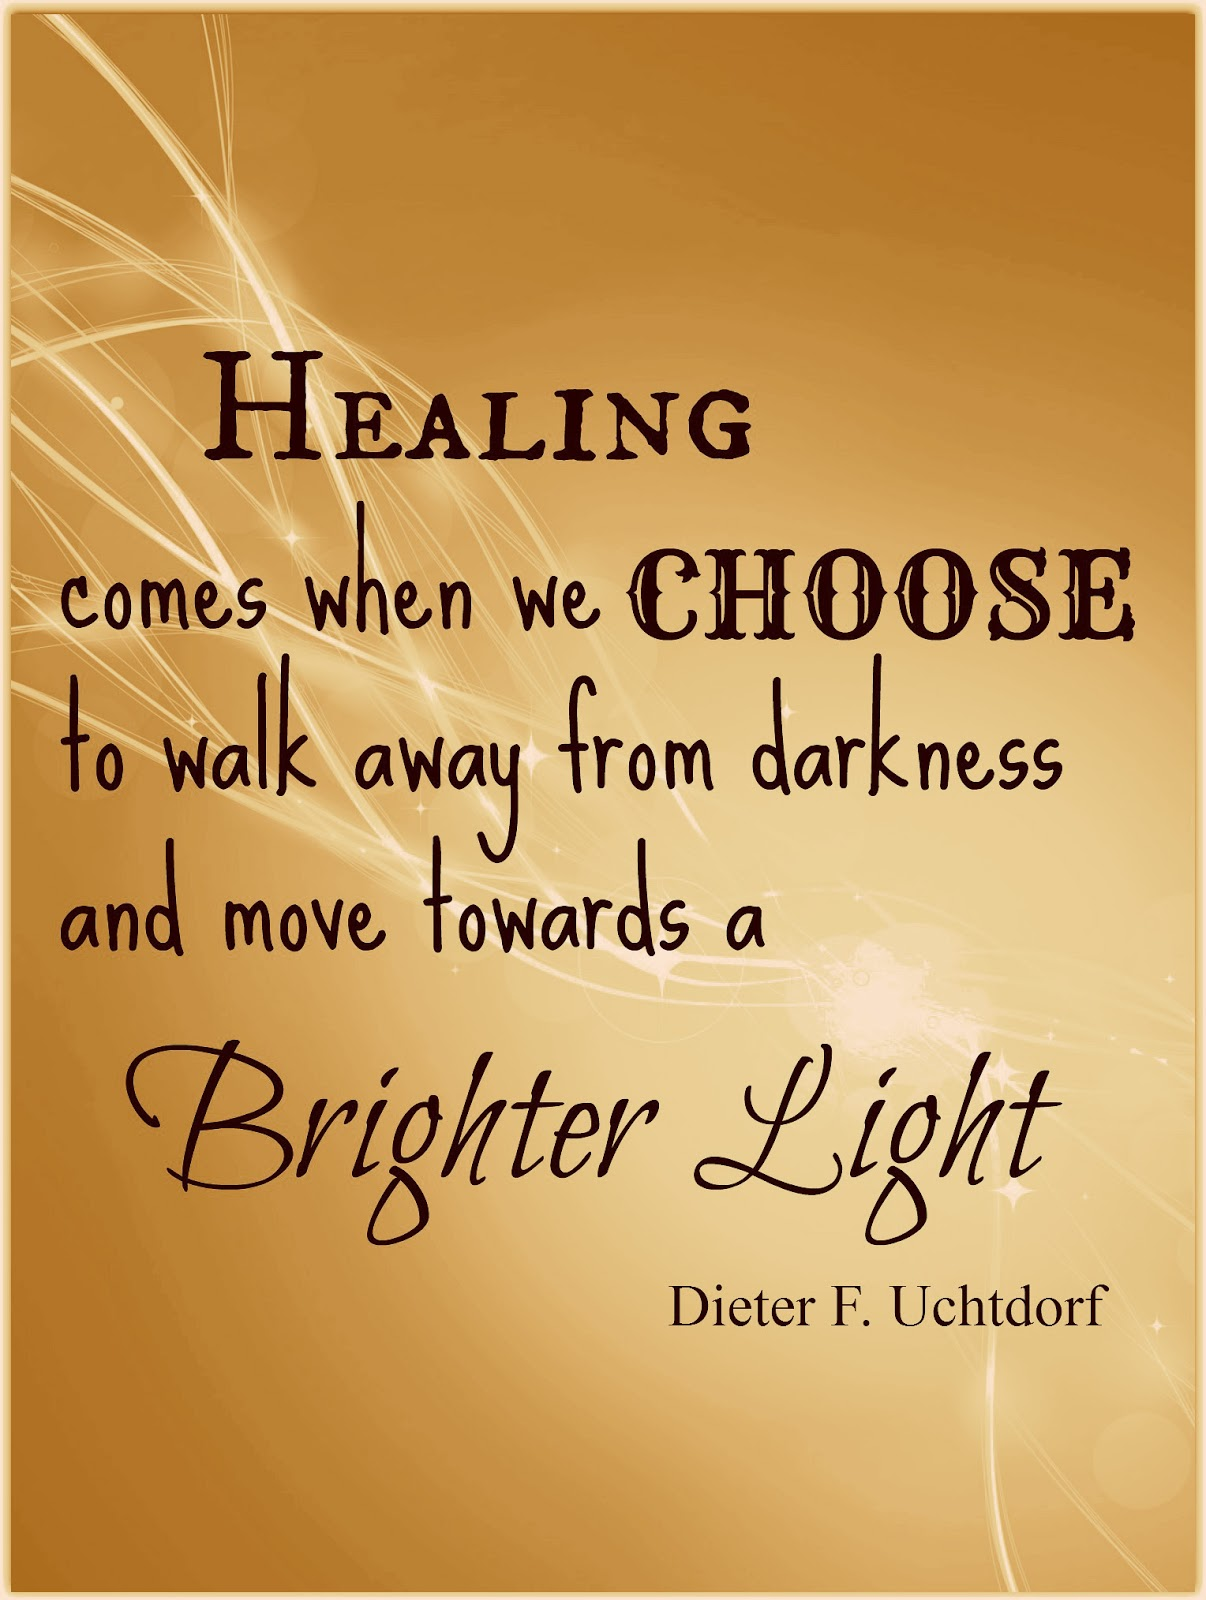 Quotes about healing